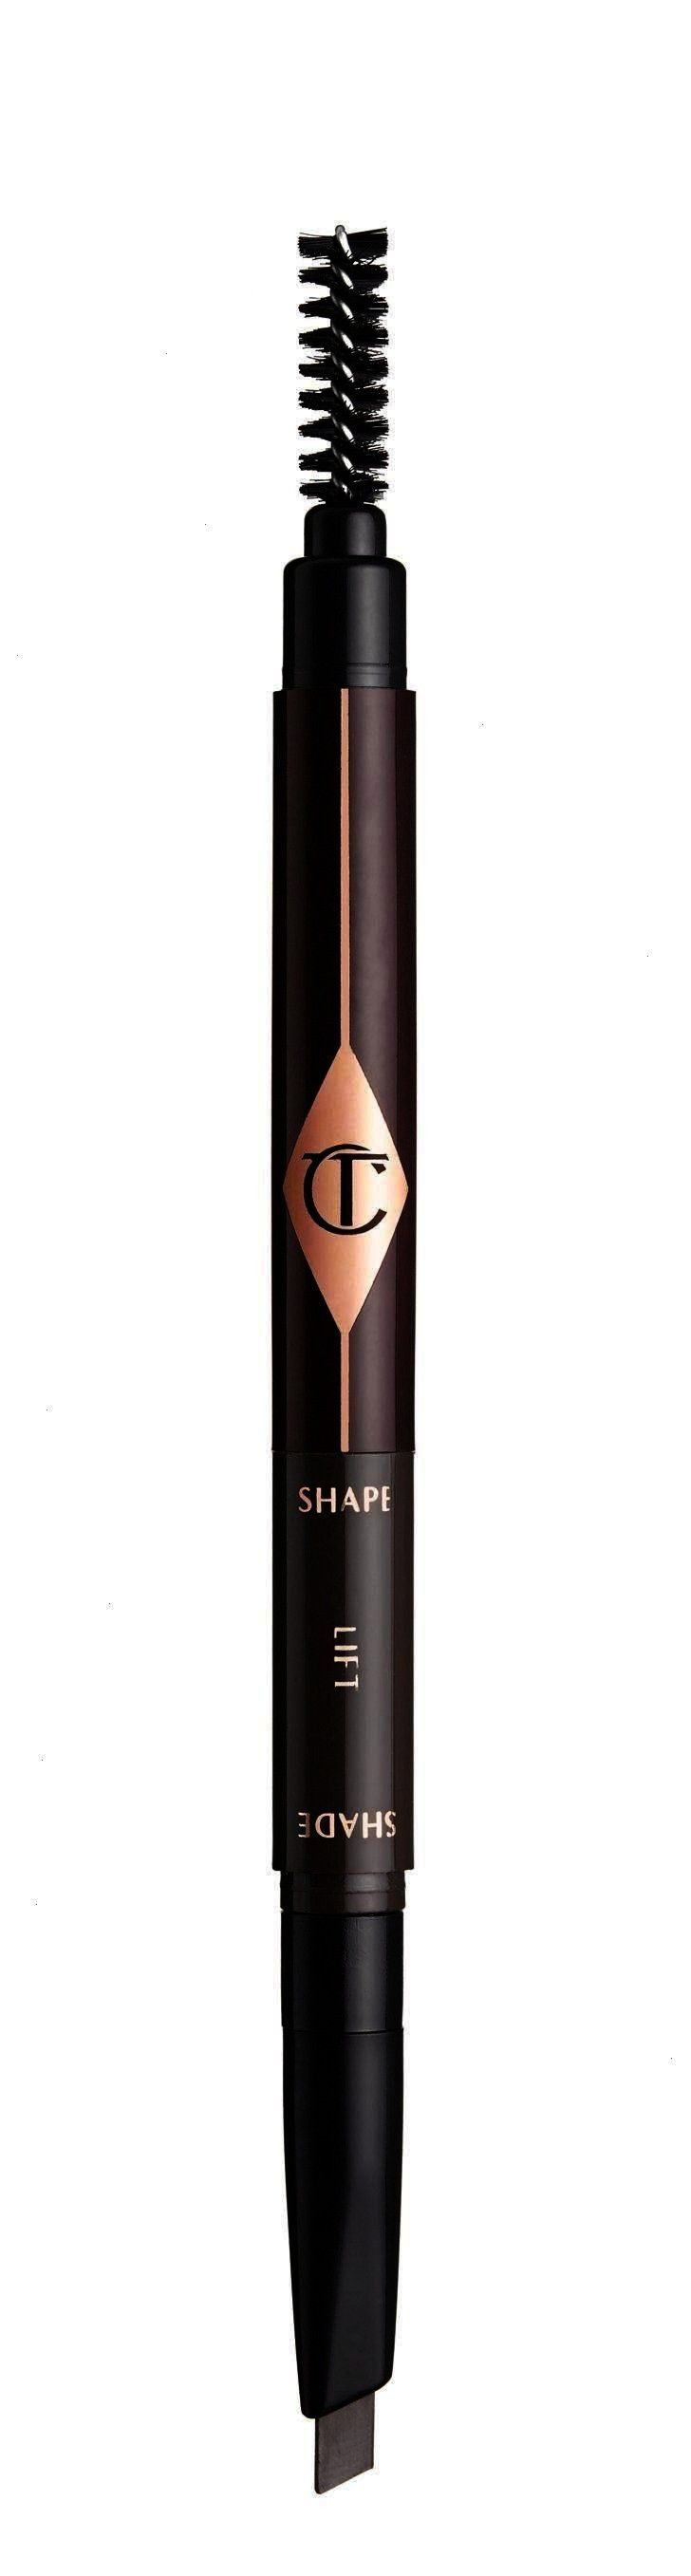 for Later The Makeup You Need to Look Like Kate Moss Brow Lift in Cara DPin for Later The Makeup You Need to Look Like Kate Moss Brow Lift in Cara DLift in Cara D Pin for...